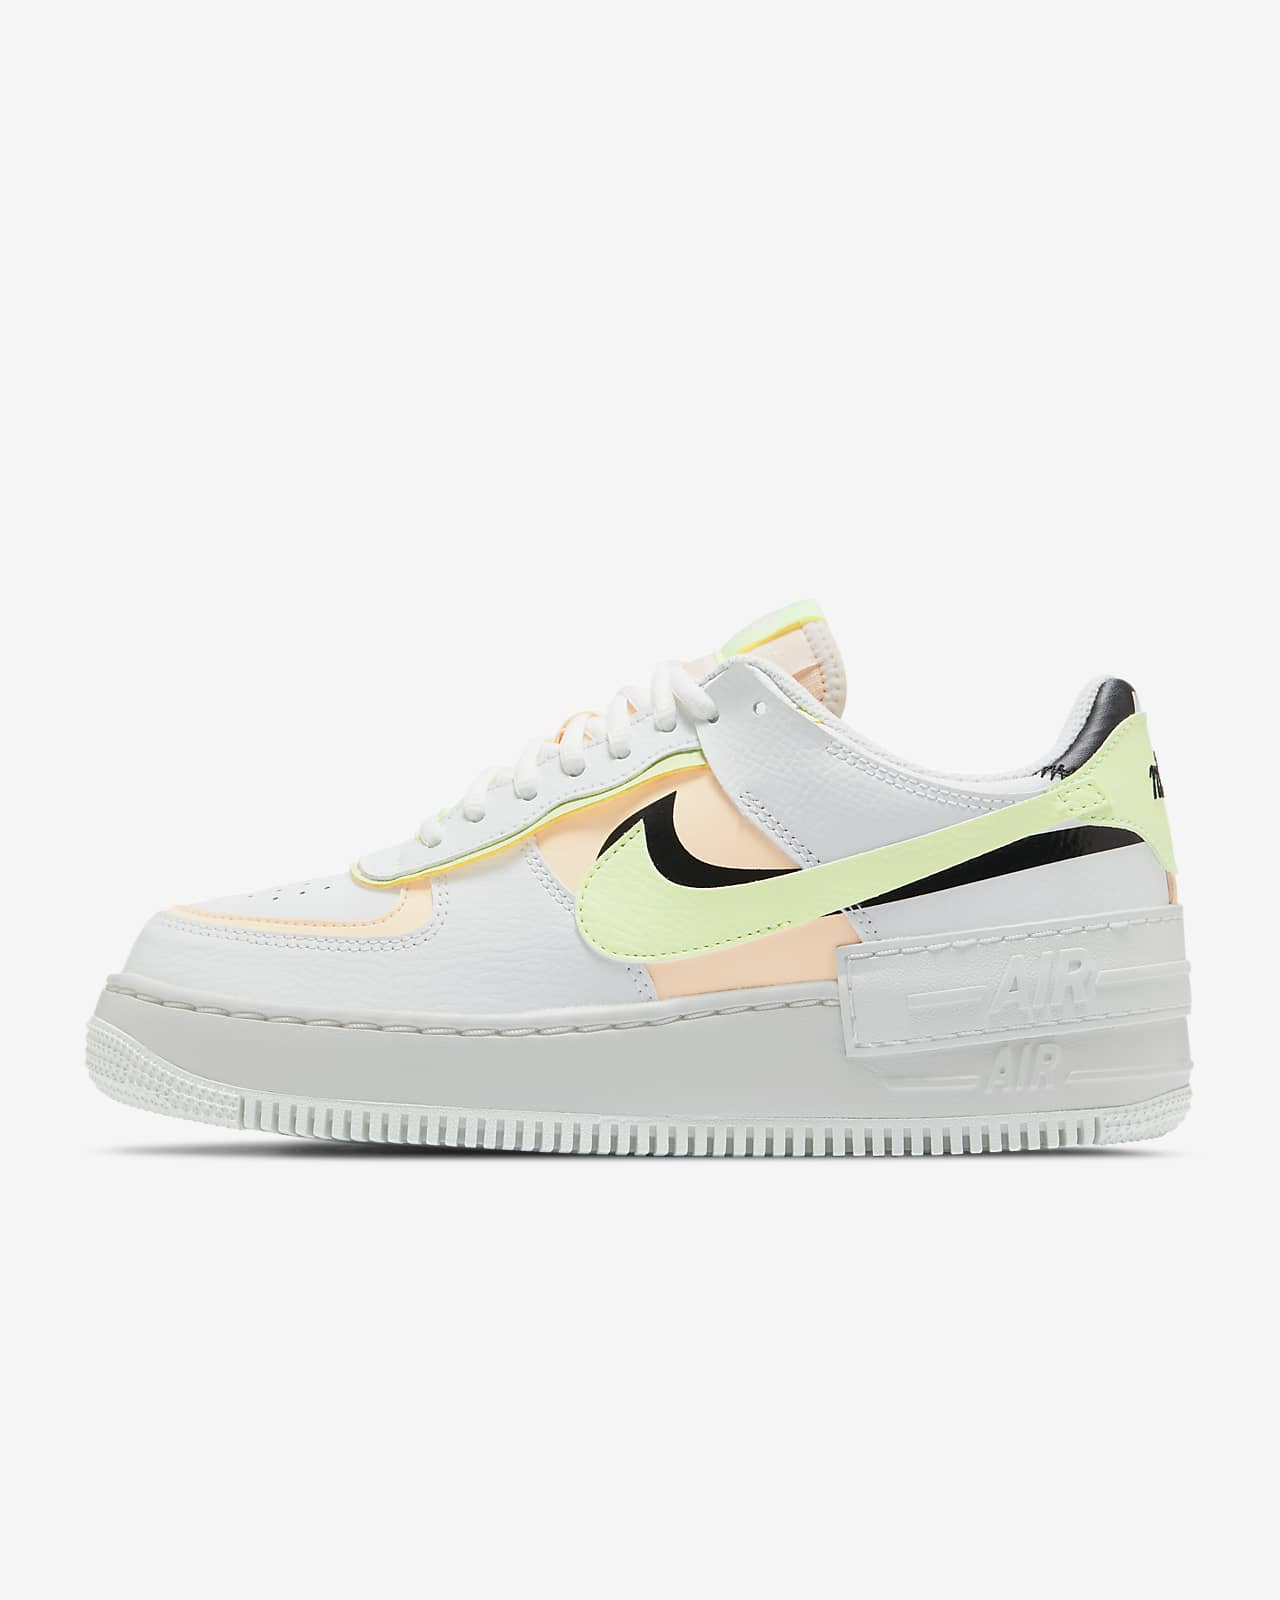 Nike Air Force 1 Shadow Women S Shoe Nike Sg Nike reveals another new colorway of their air force 1 shadow that. nike air force 1 shadow women s shoe